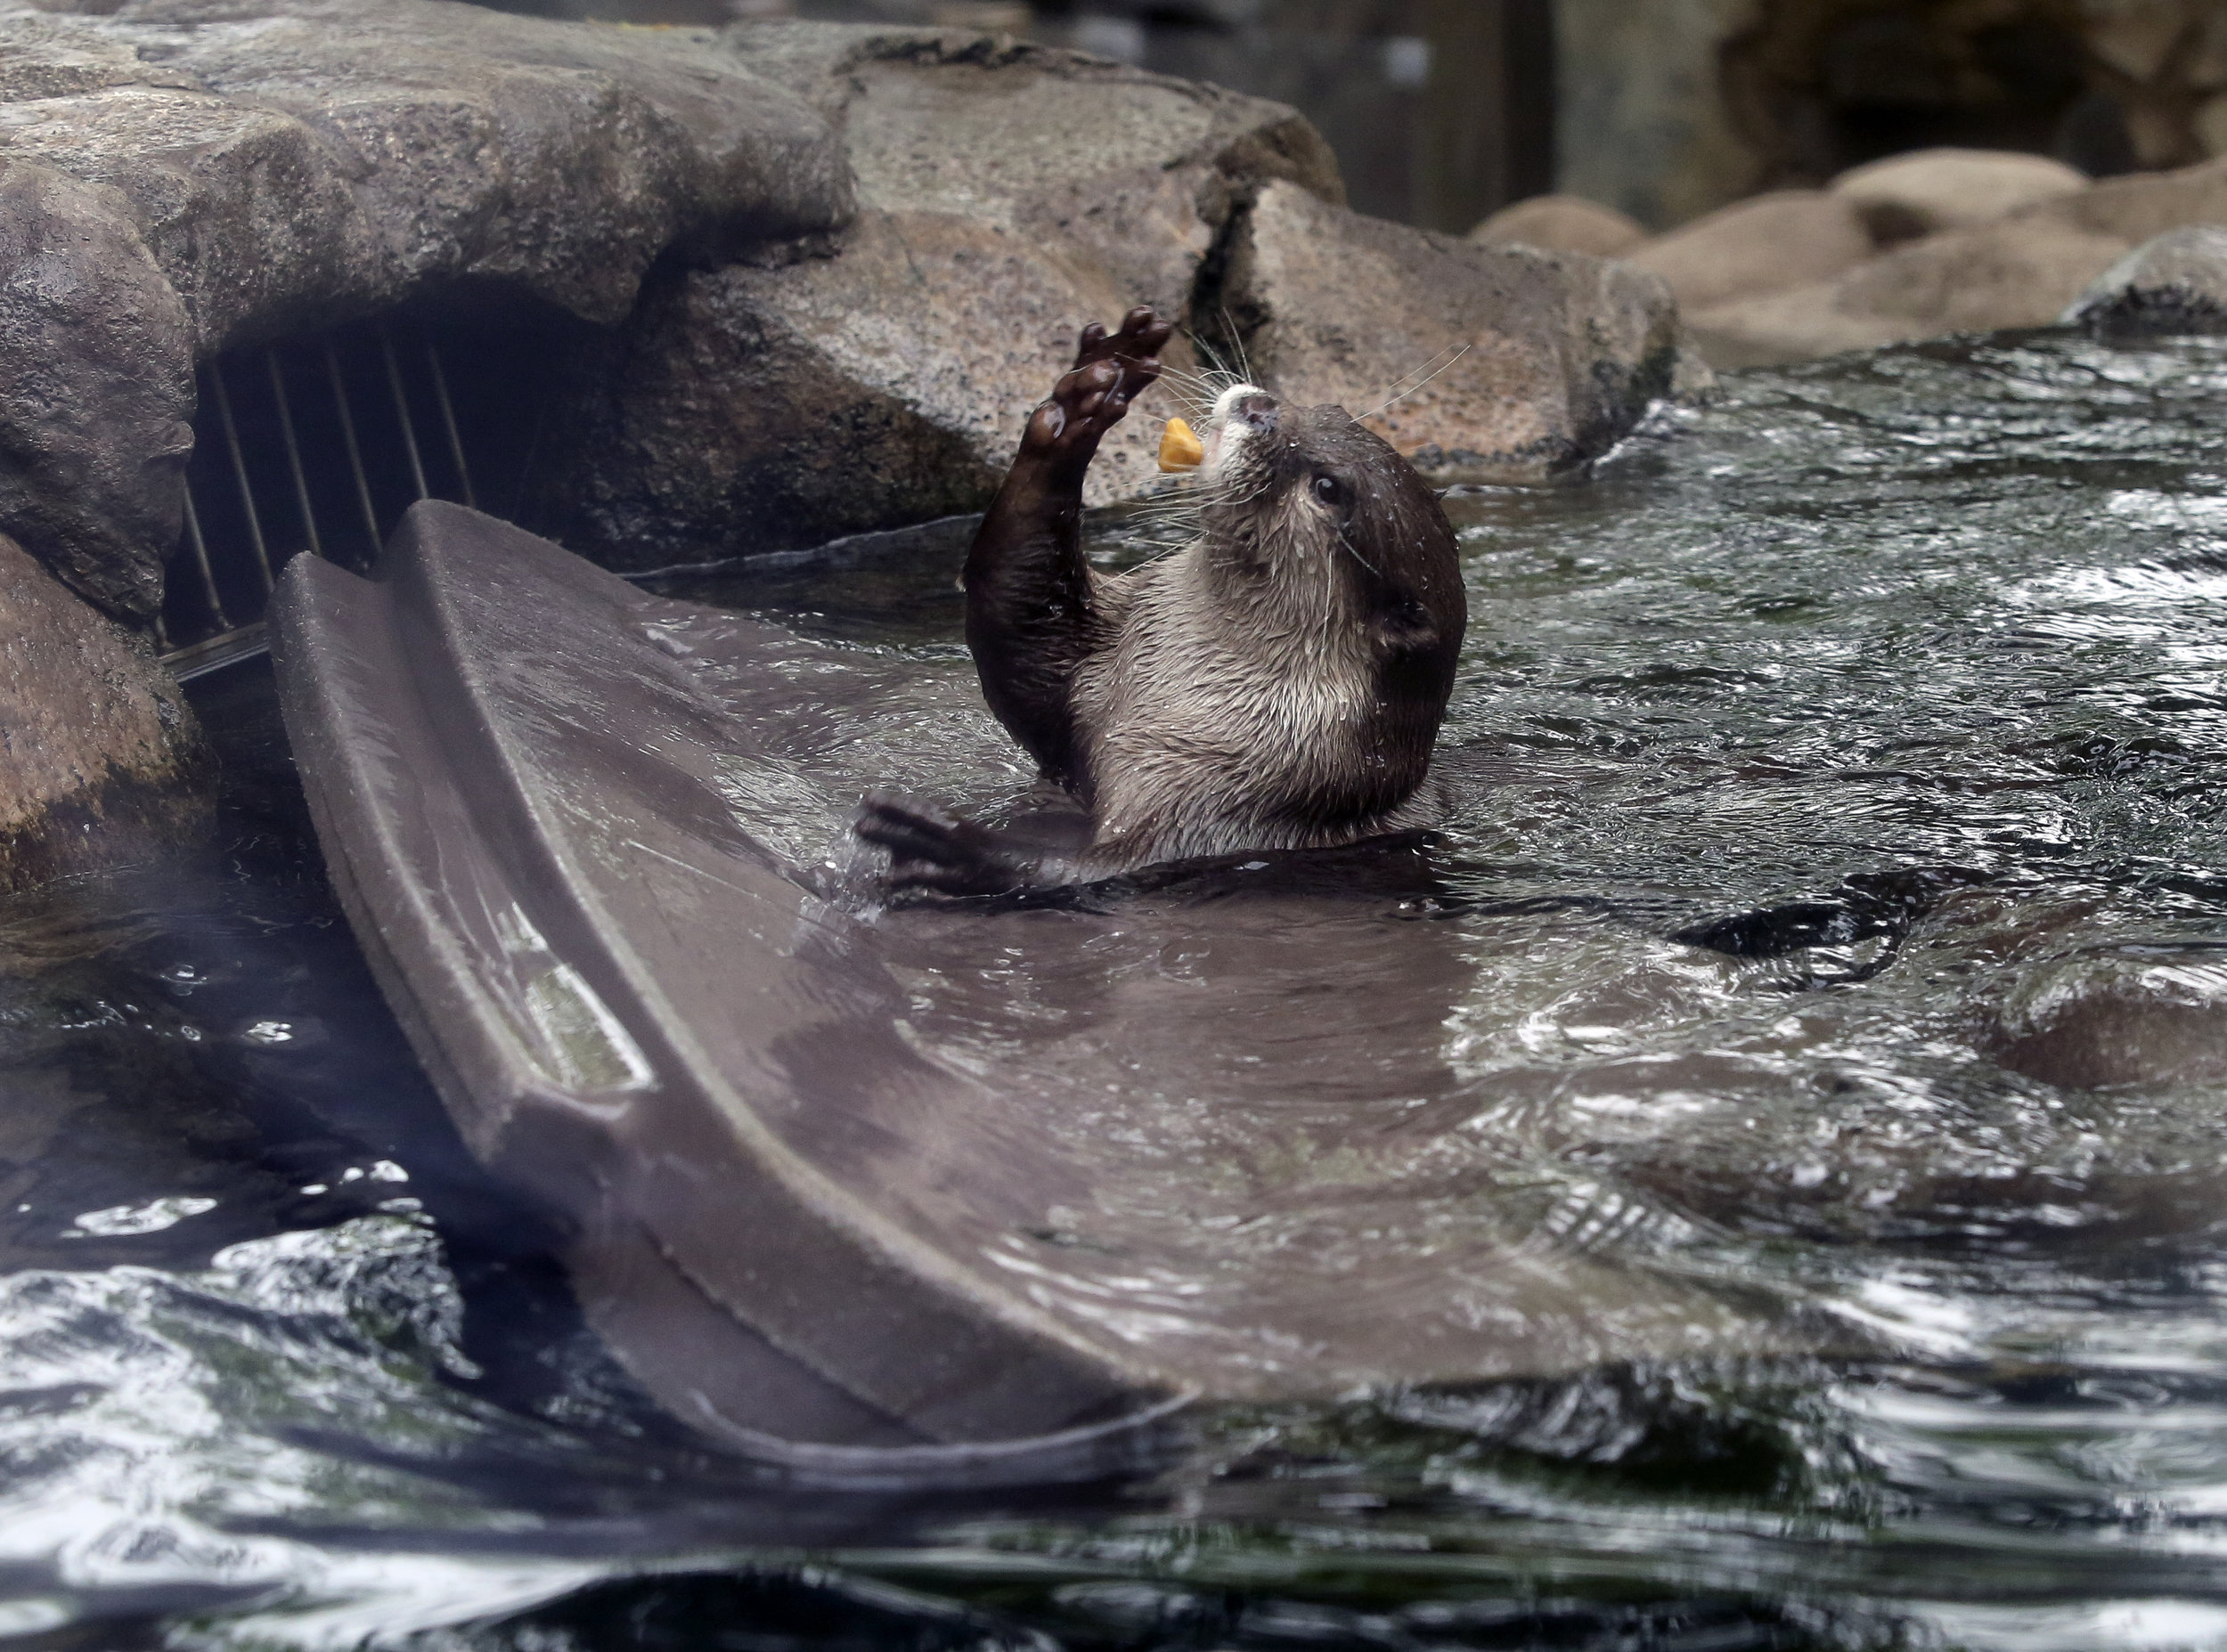 Otter, Open Your Mouth to Catch the Treat!